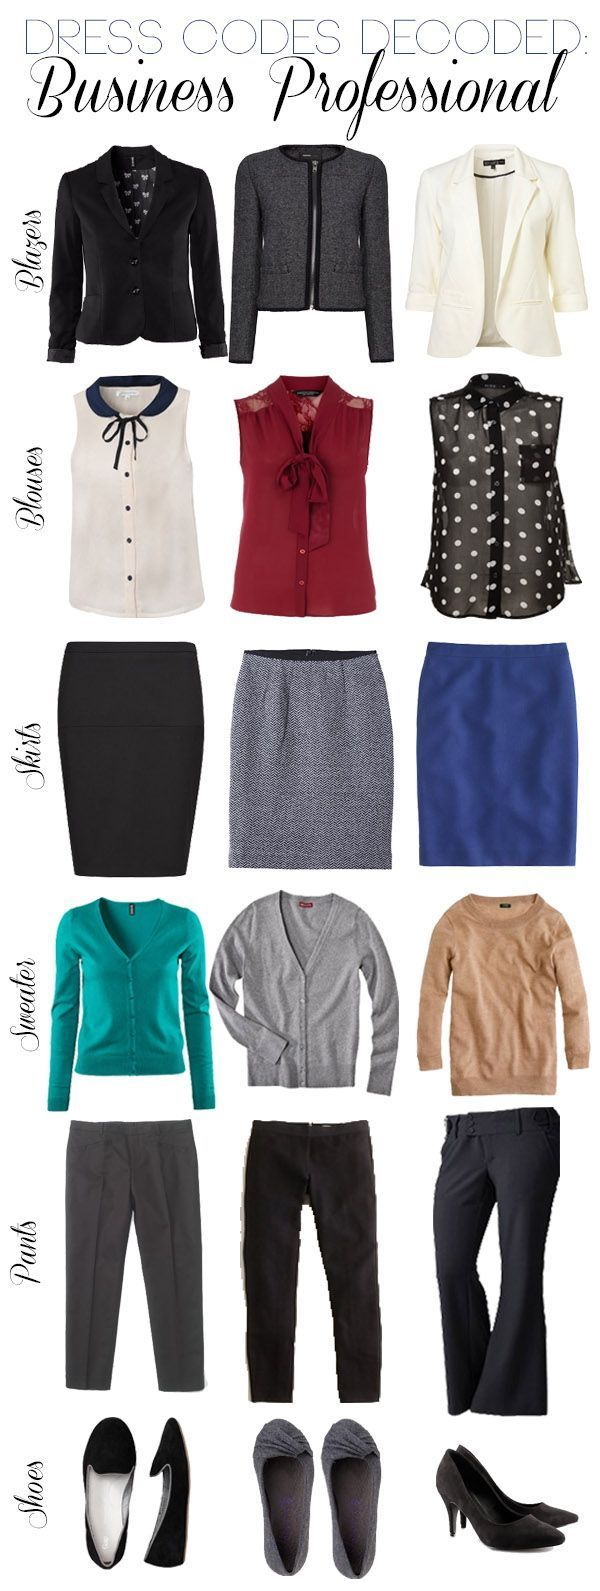 Business Professional clothing to mix & match thats affordable & stylish! --Help for trying to build a professional  wardrobe.